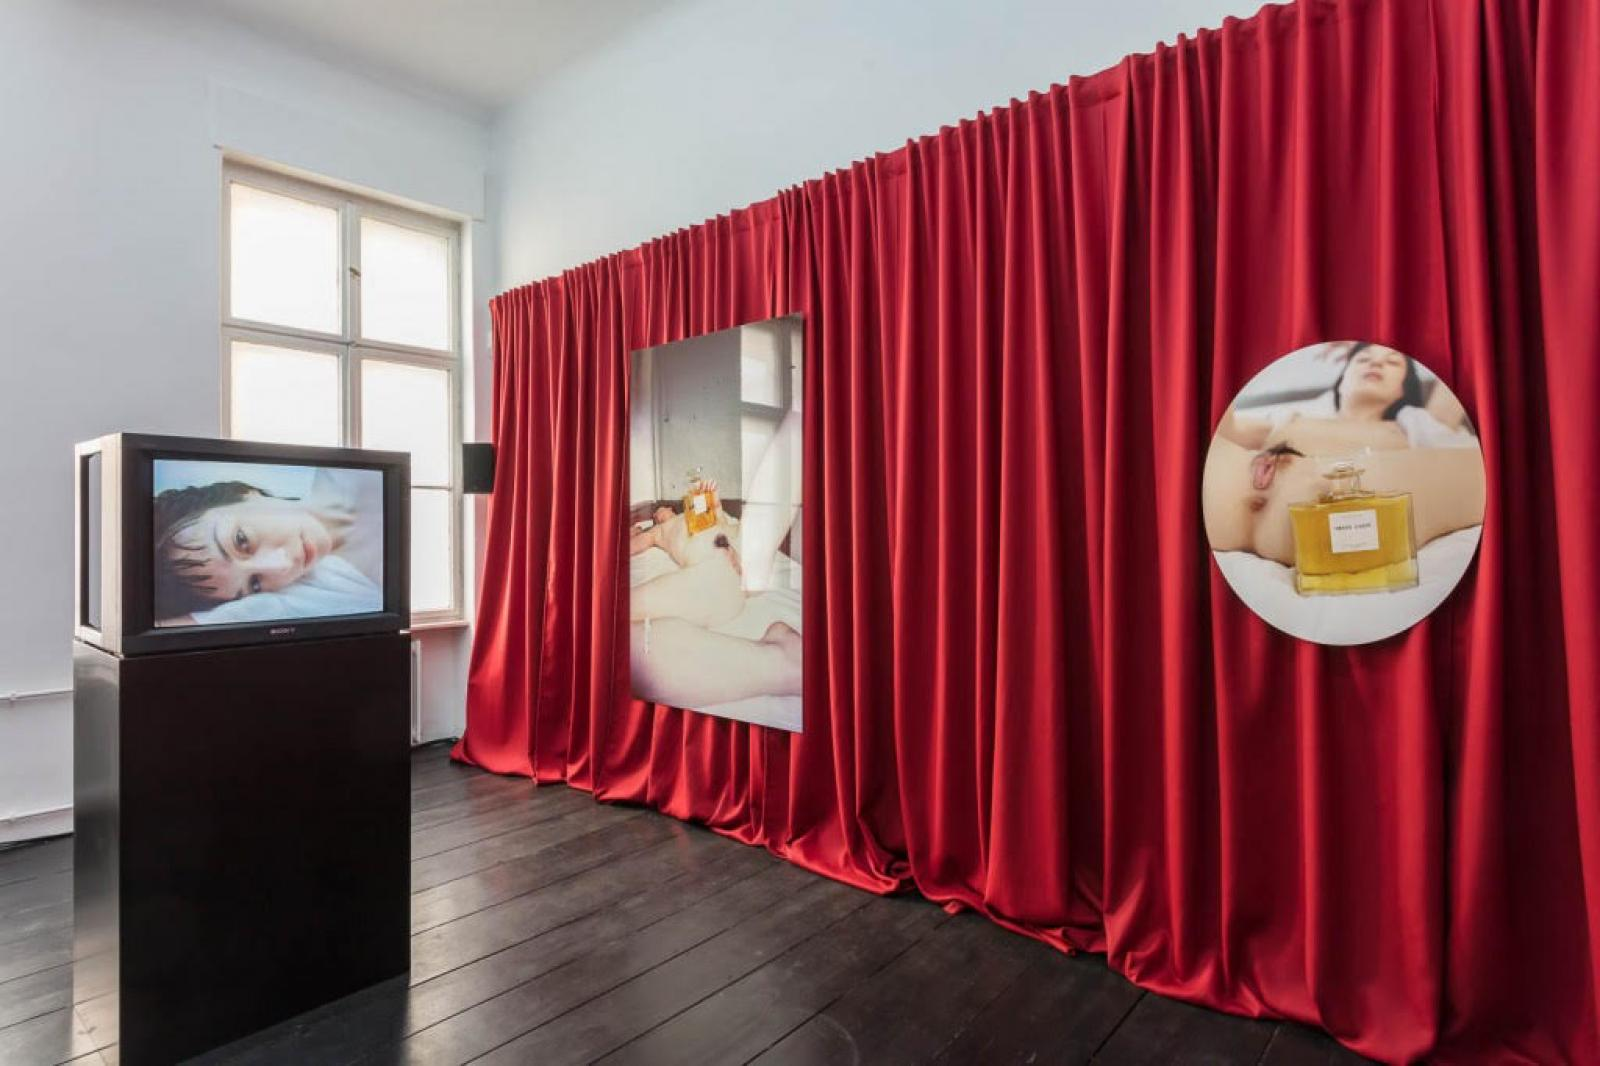 Symonds, Permain, Lebon /Iron Lady installation view at Isabella Bortolozzi Galerie/